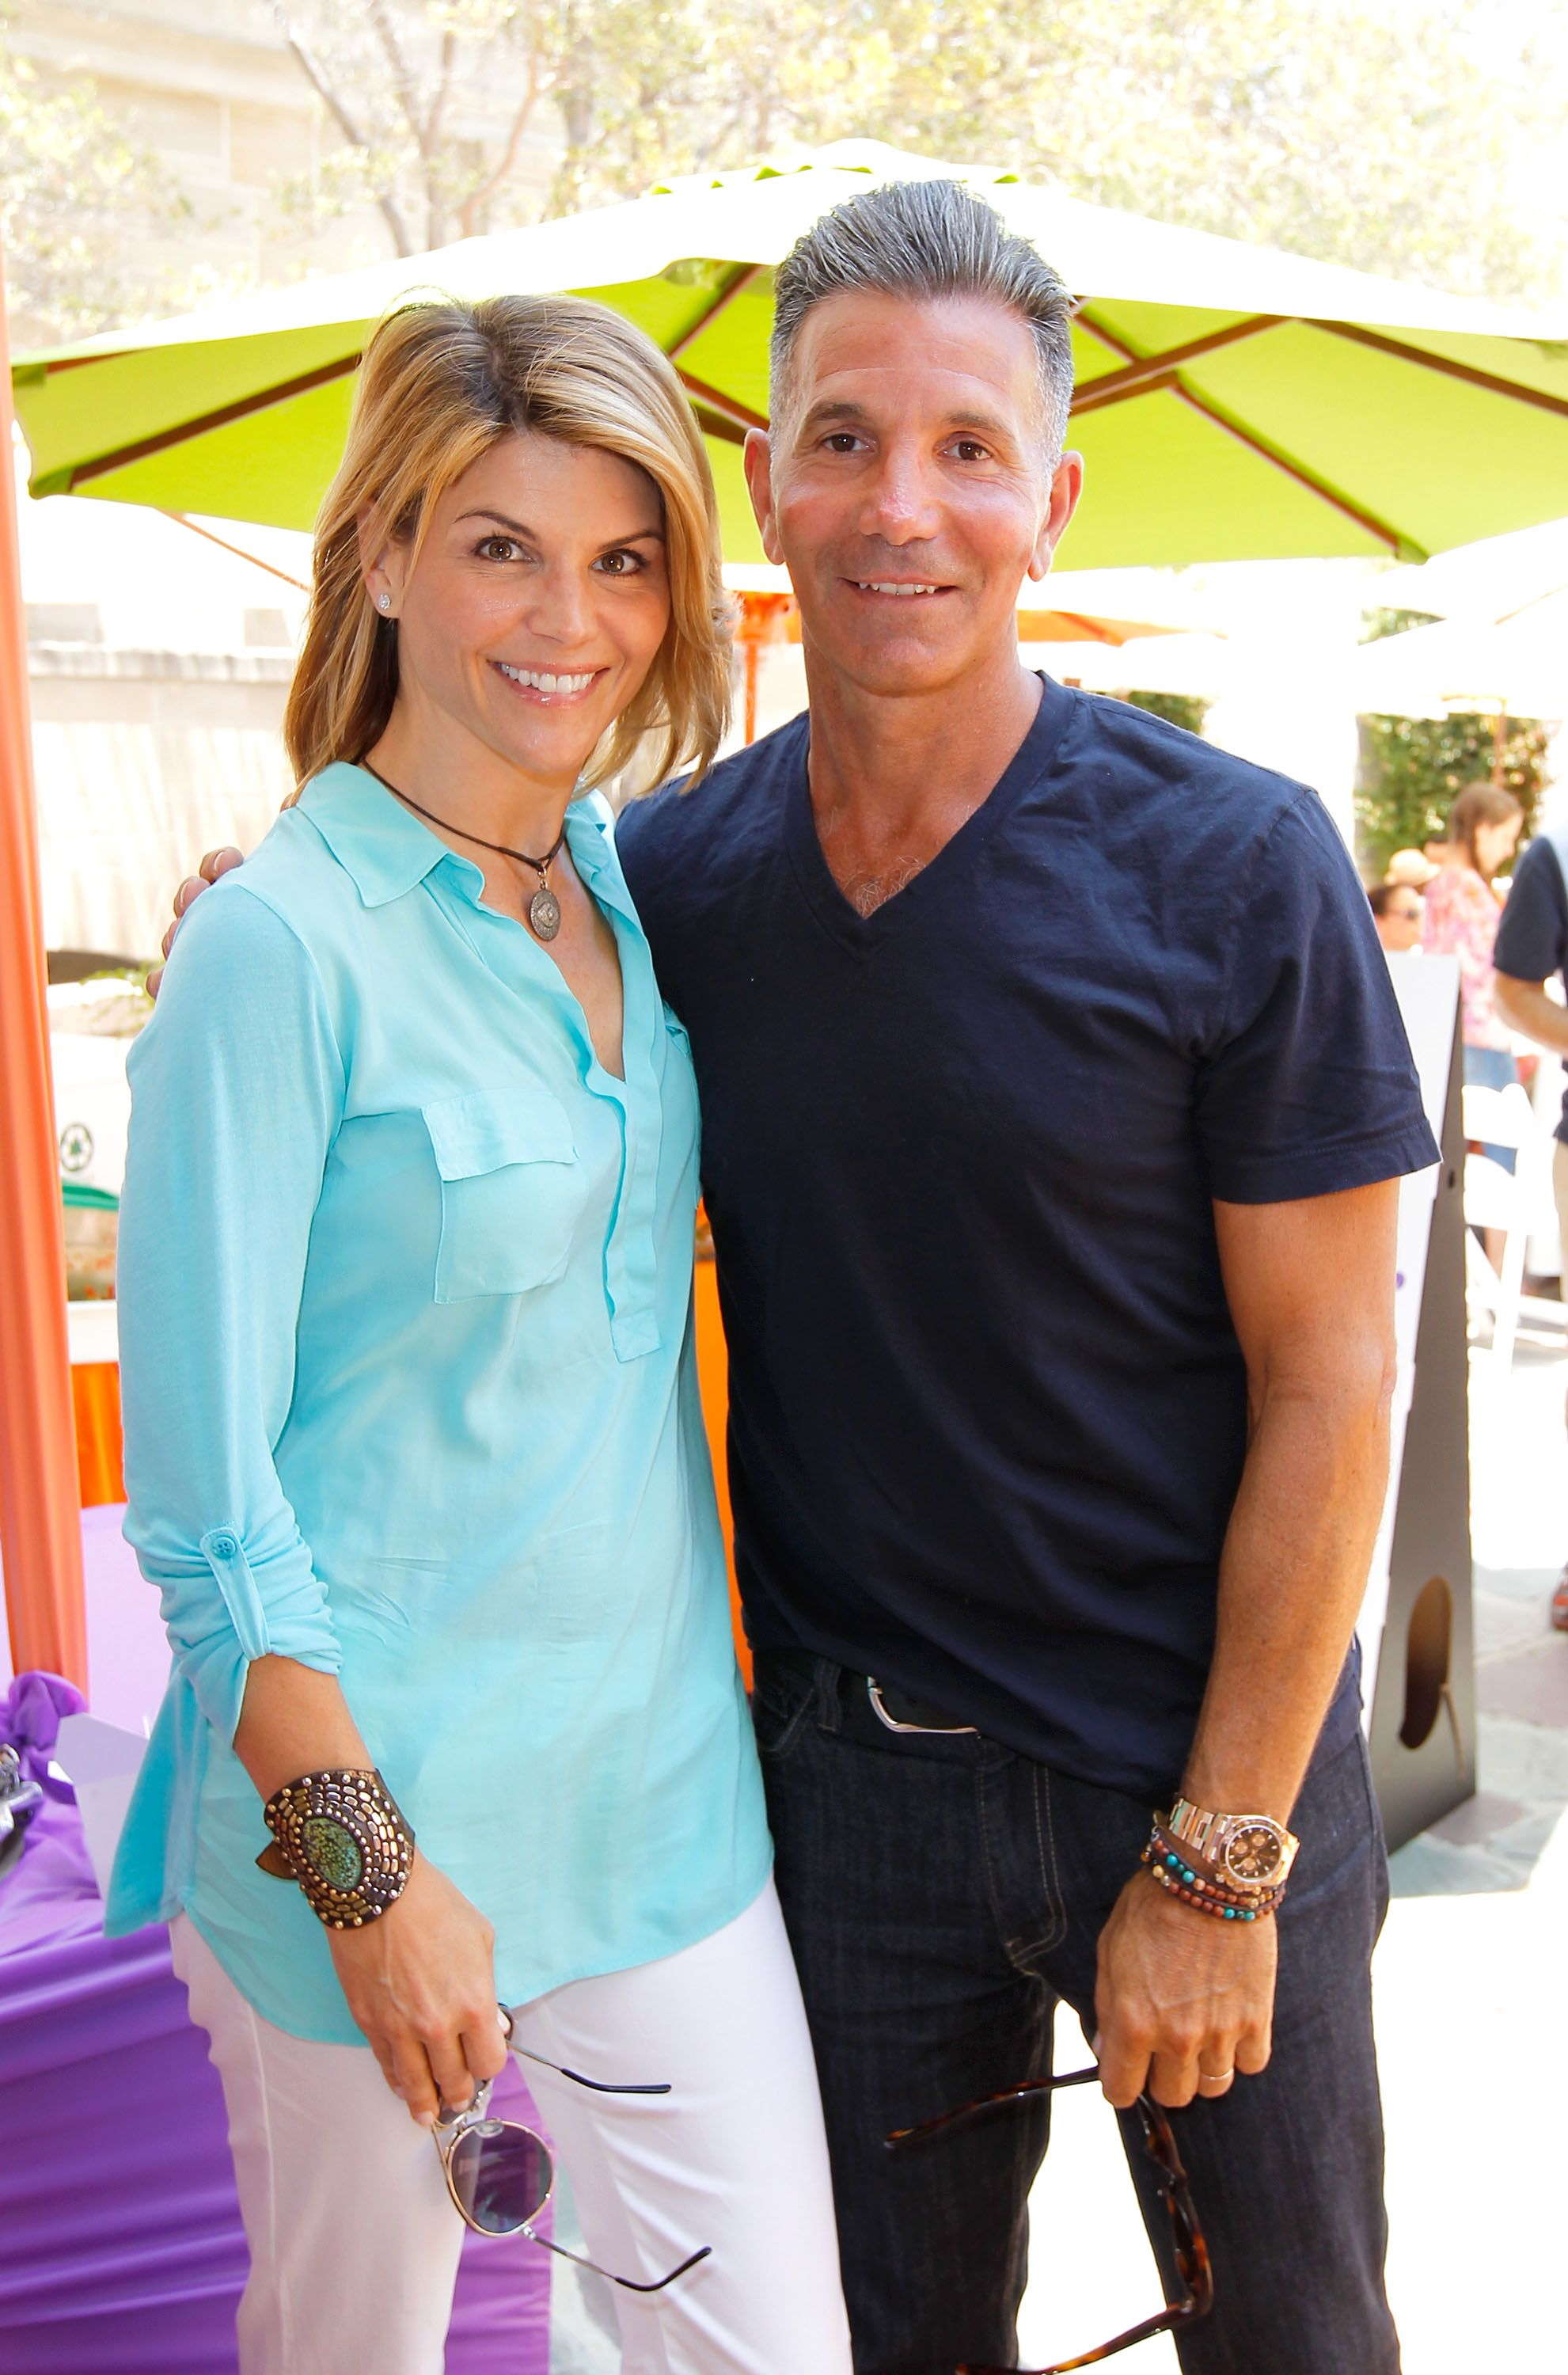 Who Is Mossimo Giannulli, Olivia Jade Giannulli's Father?